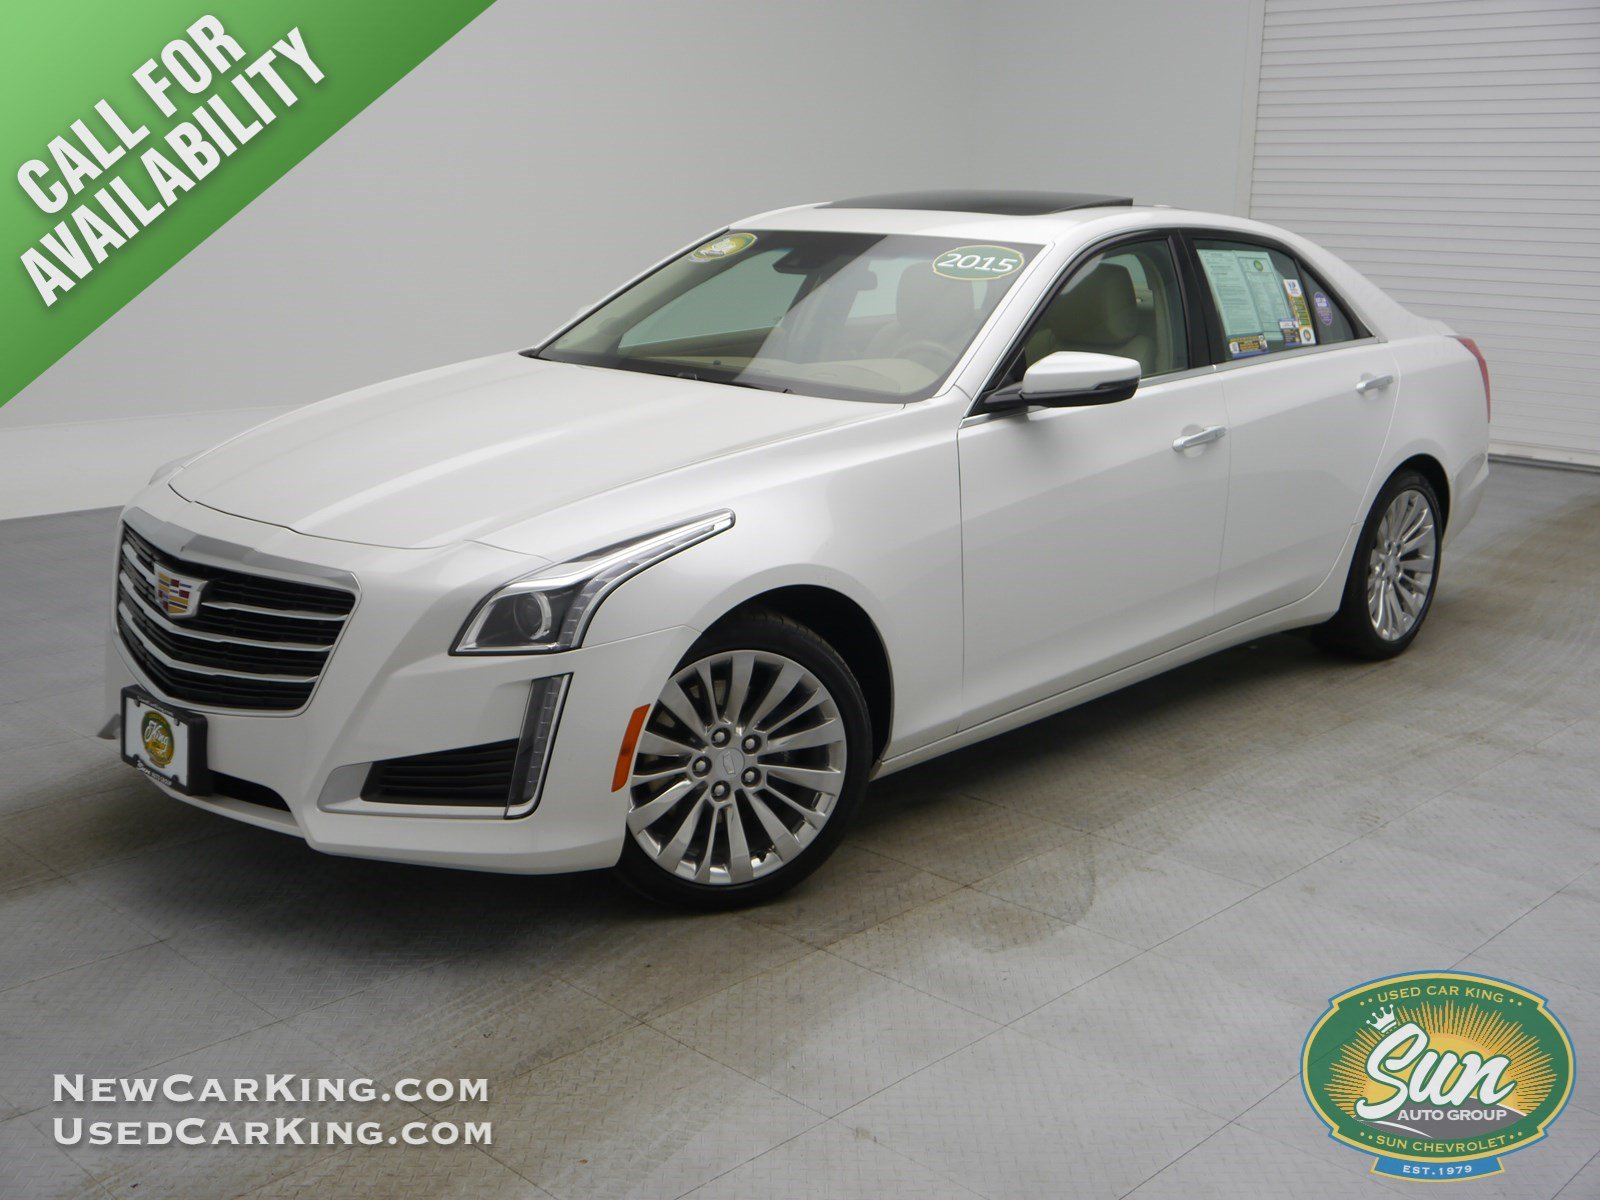 wa used cadillac cts in black new a ta fresh cars for sale of